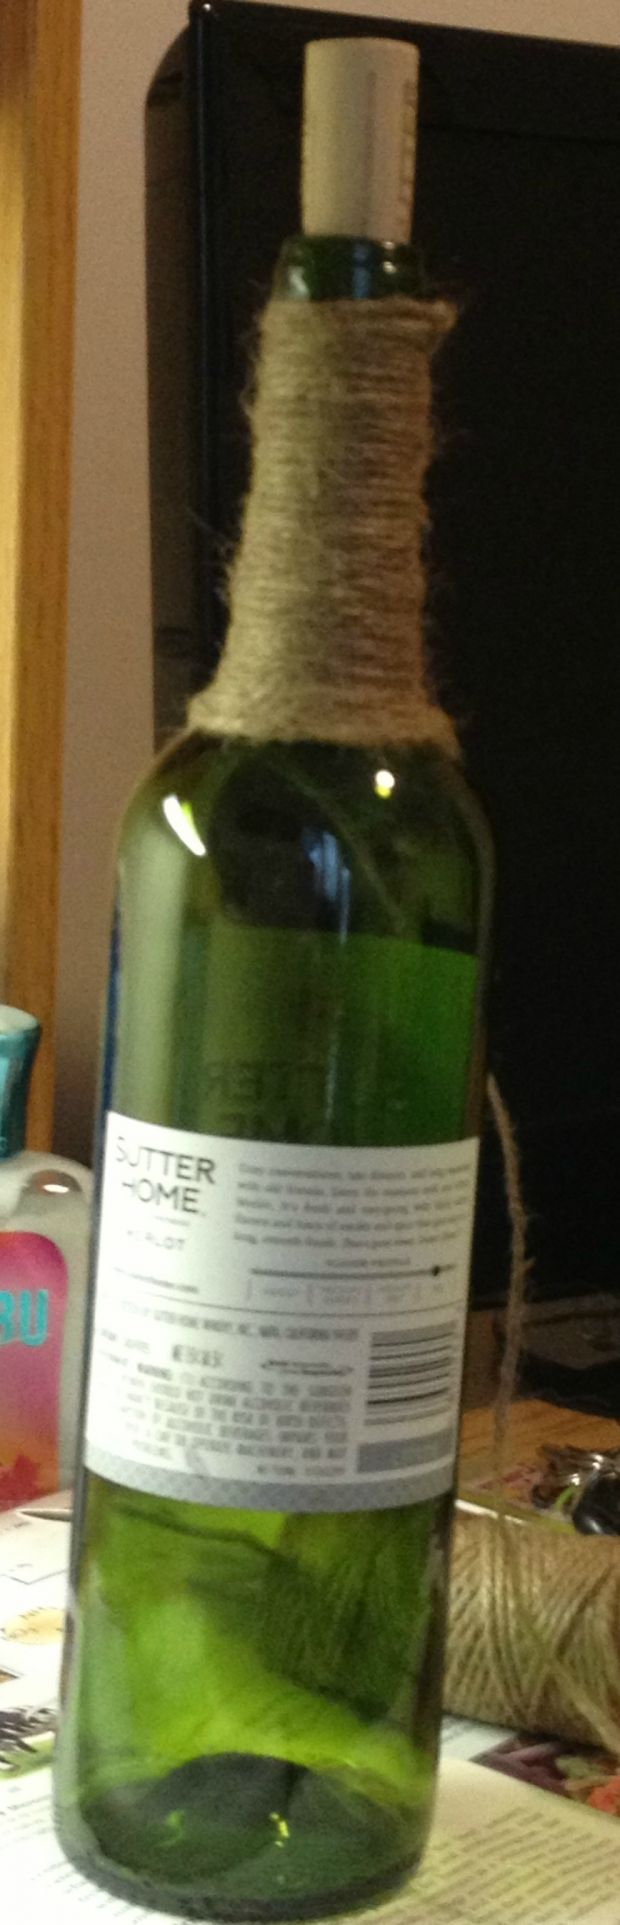 Feeling Creative? DIY Wine Bottle Craft (Step By Step Instructions)   Her Campus